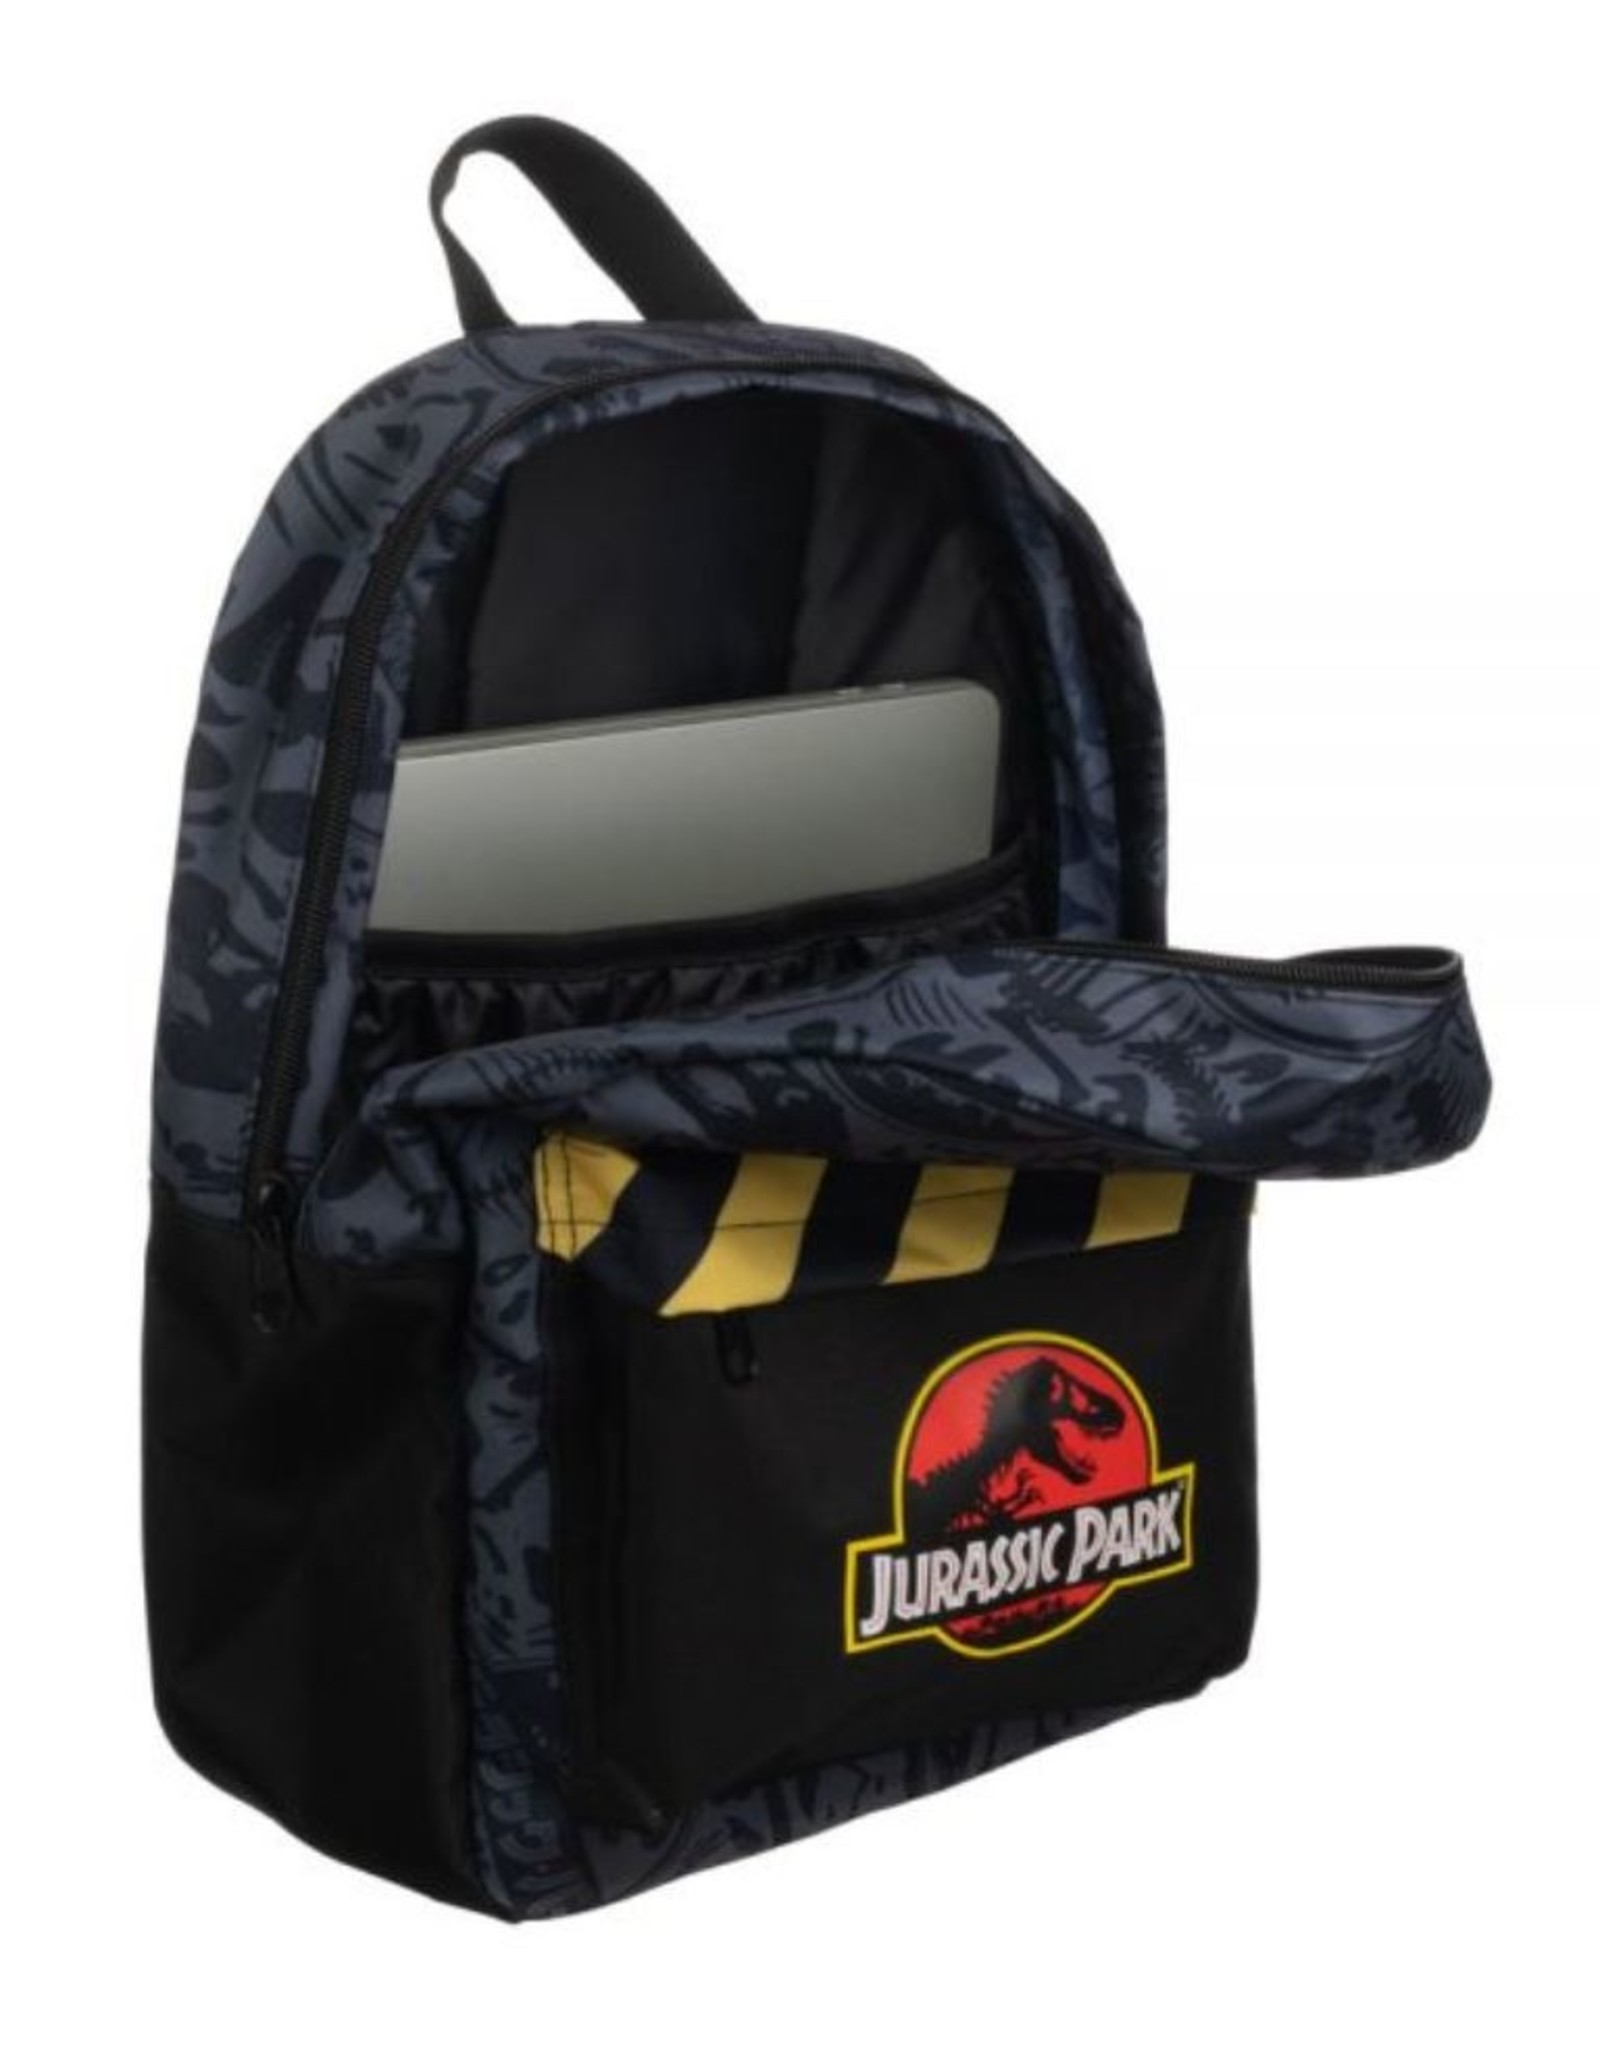 Jurassic Park Other Merchandise backpacks and fanny packs - Jurassic Park Original Bones backpack